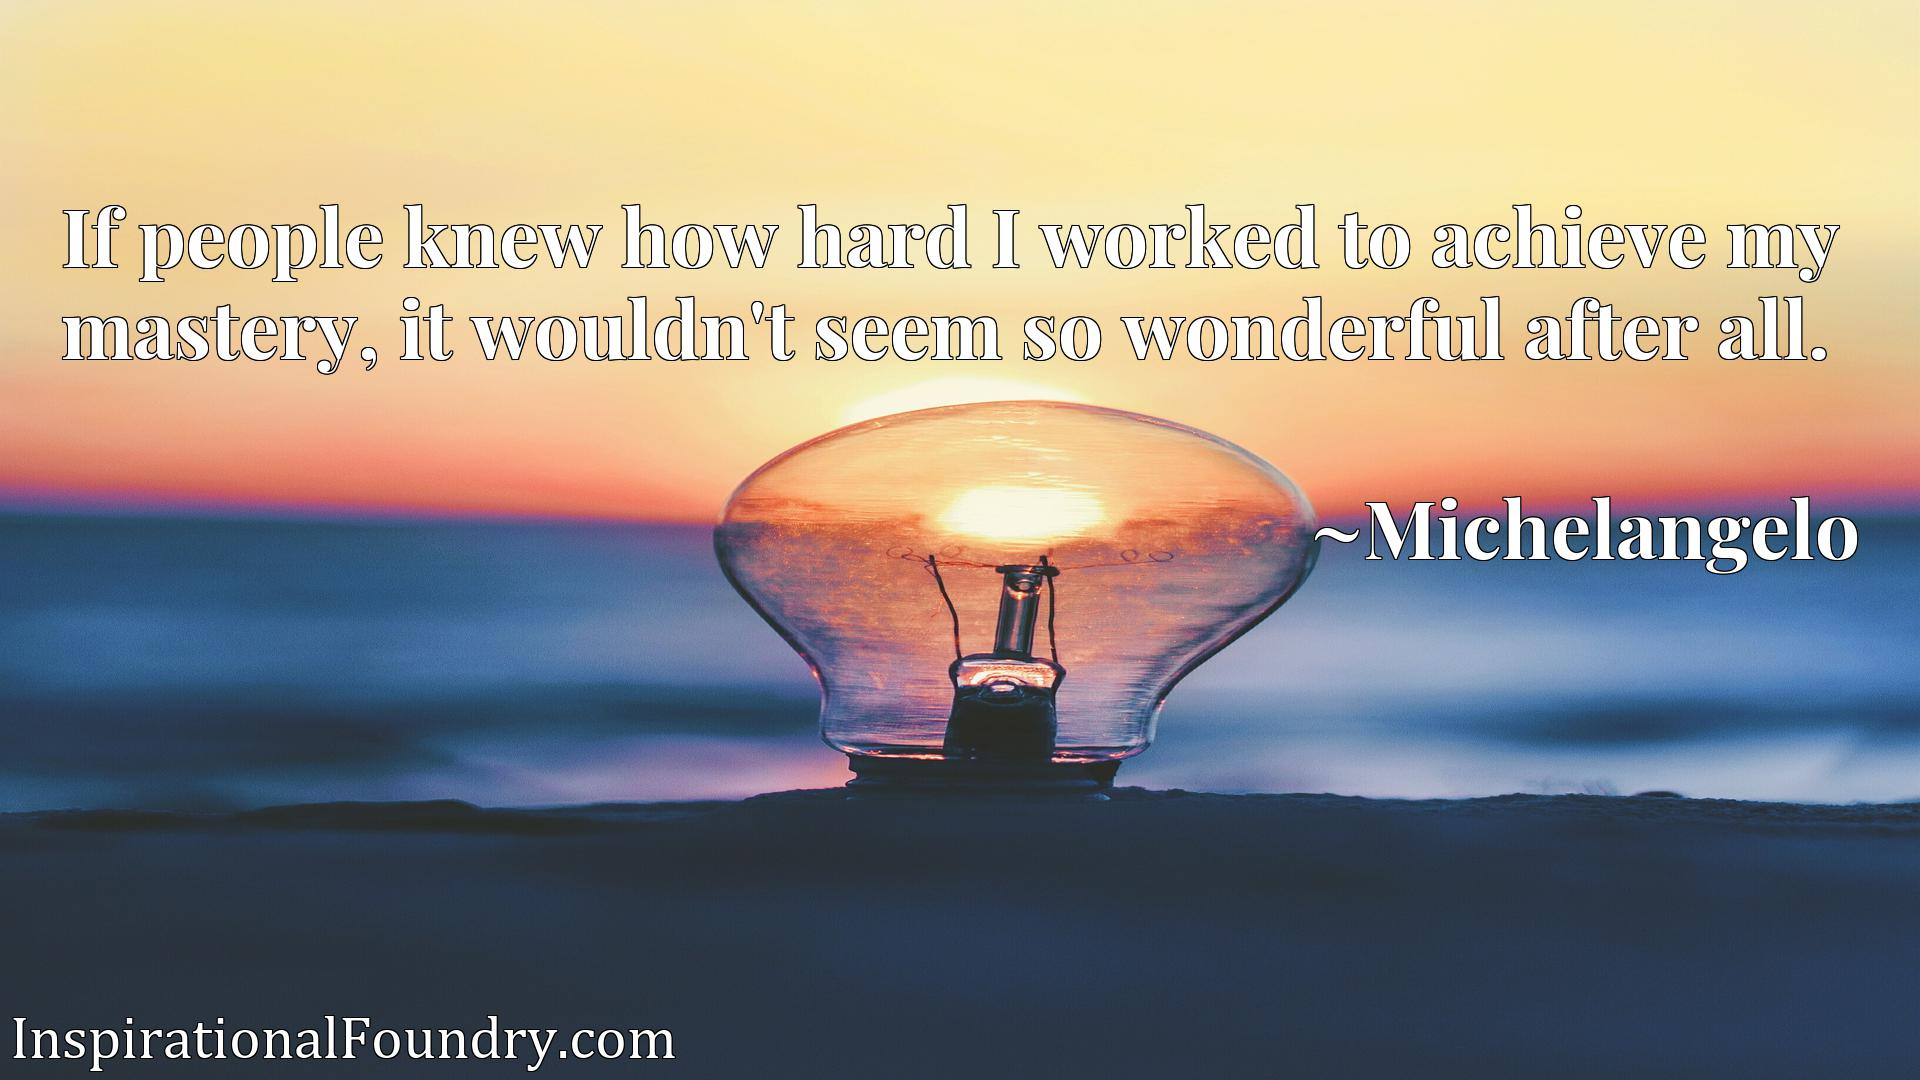 Quote Picture :If people knew how hard I worked to achieve my mastery, it wouldn't seem so wonderful after all.